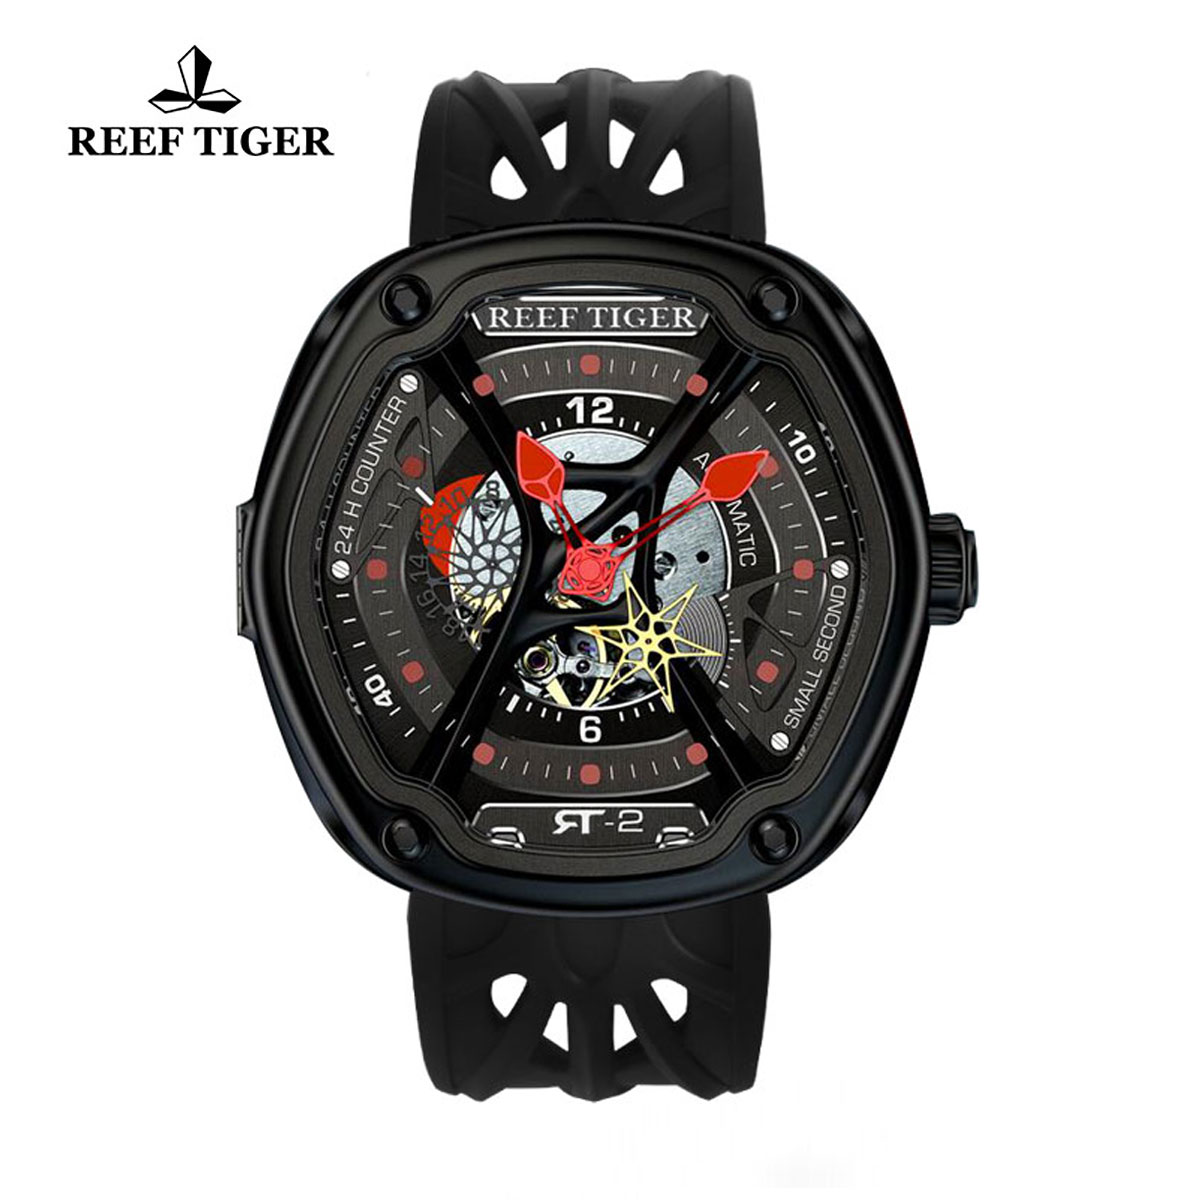 Reef Tiger Gaia's Light Sport Watches Automatic Watch PVD Case Rubber Strap Watch RGA90S7-BSBR